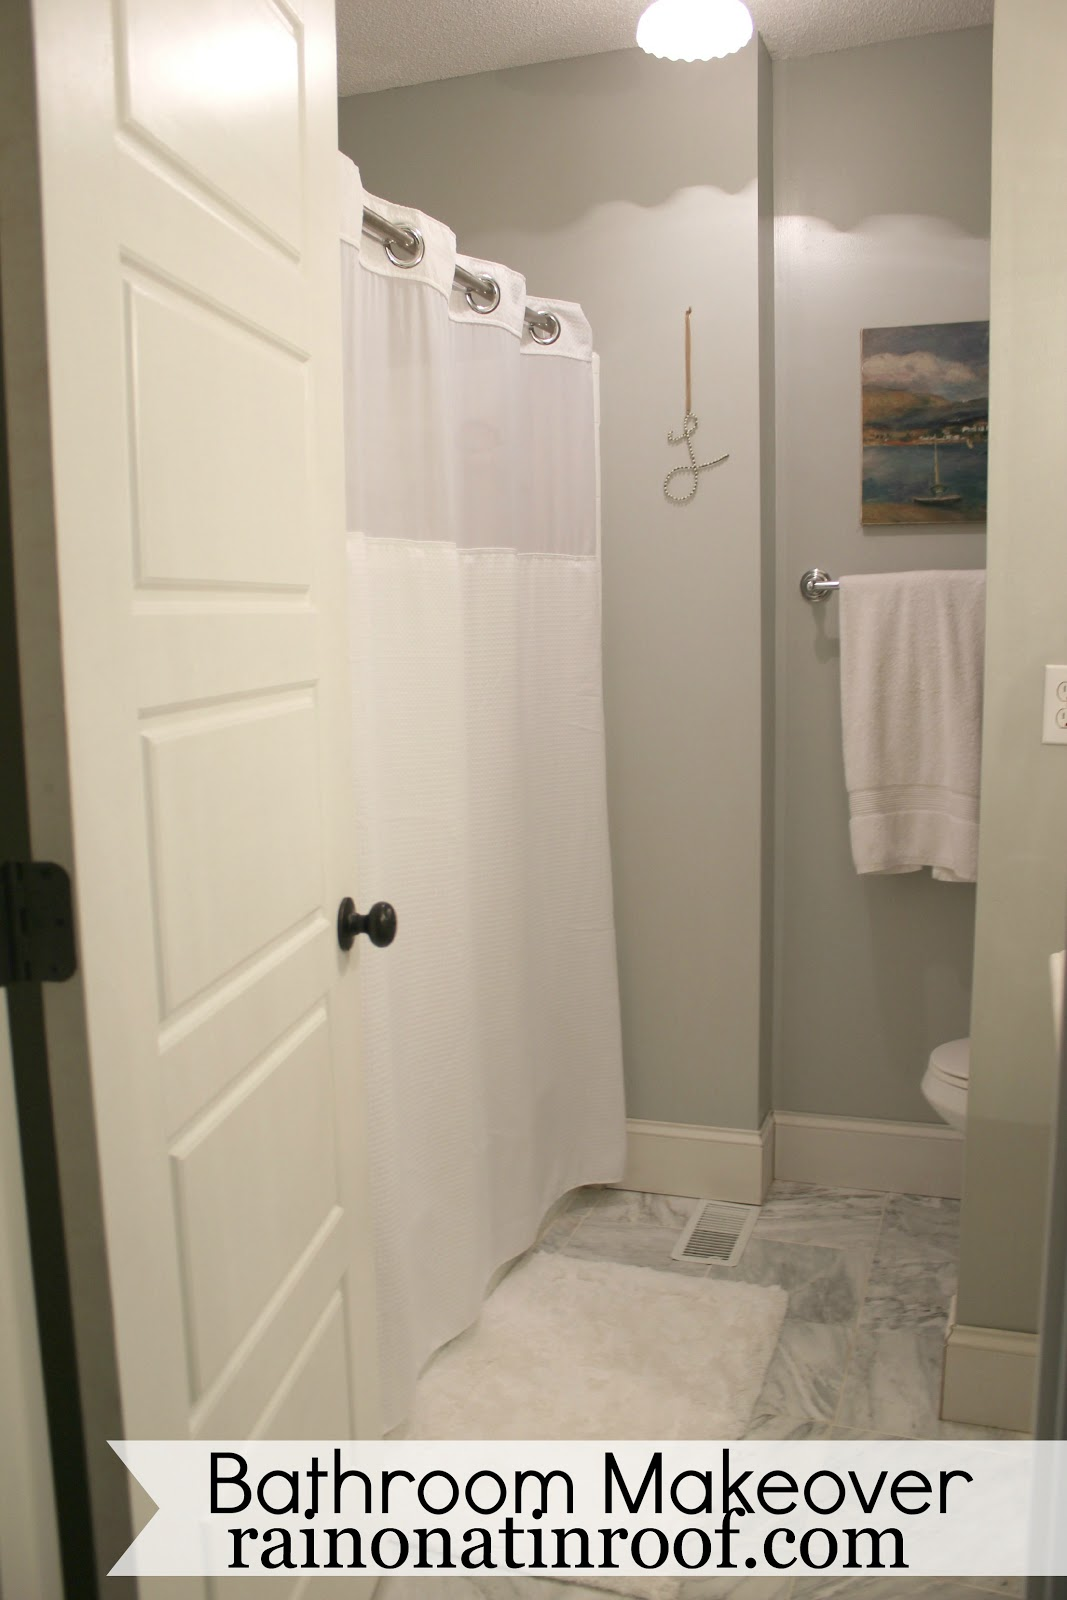 DIY Bathroom Makeover {rainonatinroof.com} #bathroom #makeover #renovation  #re